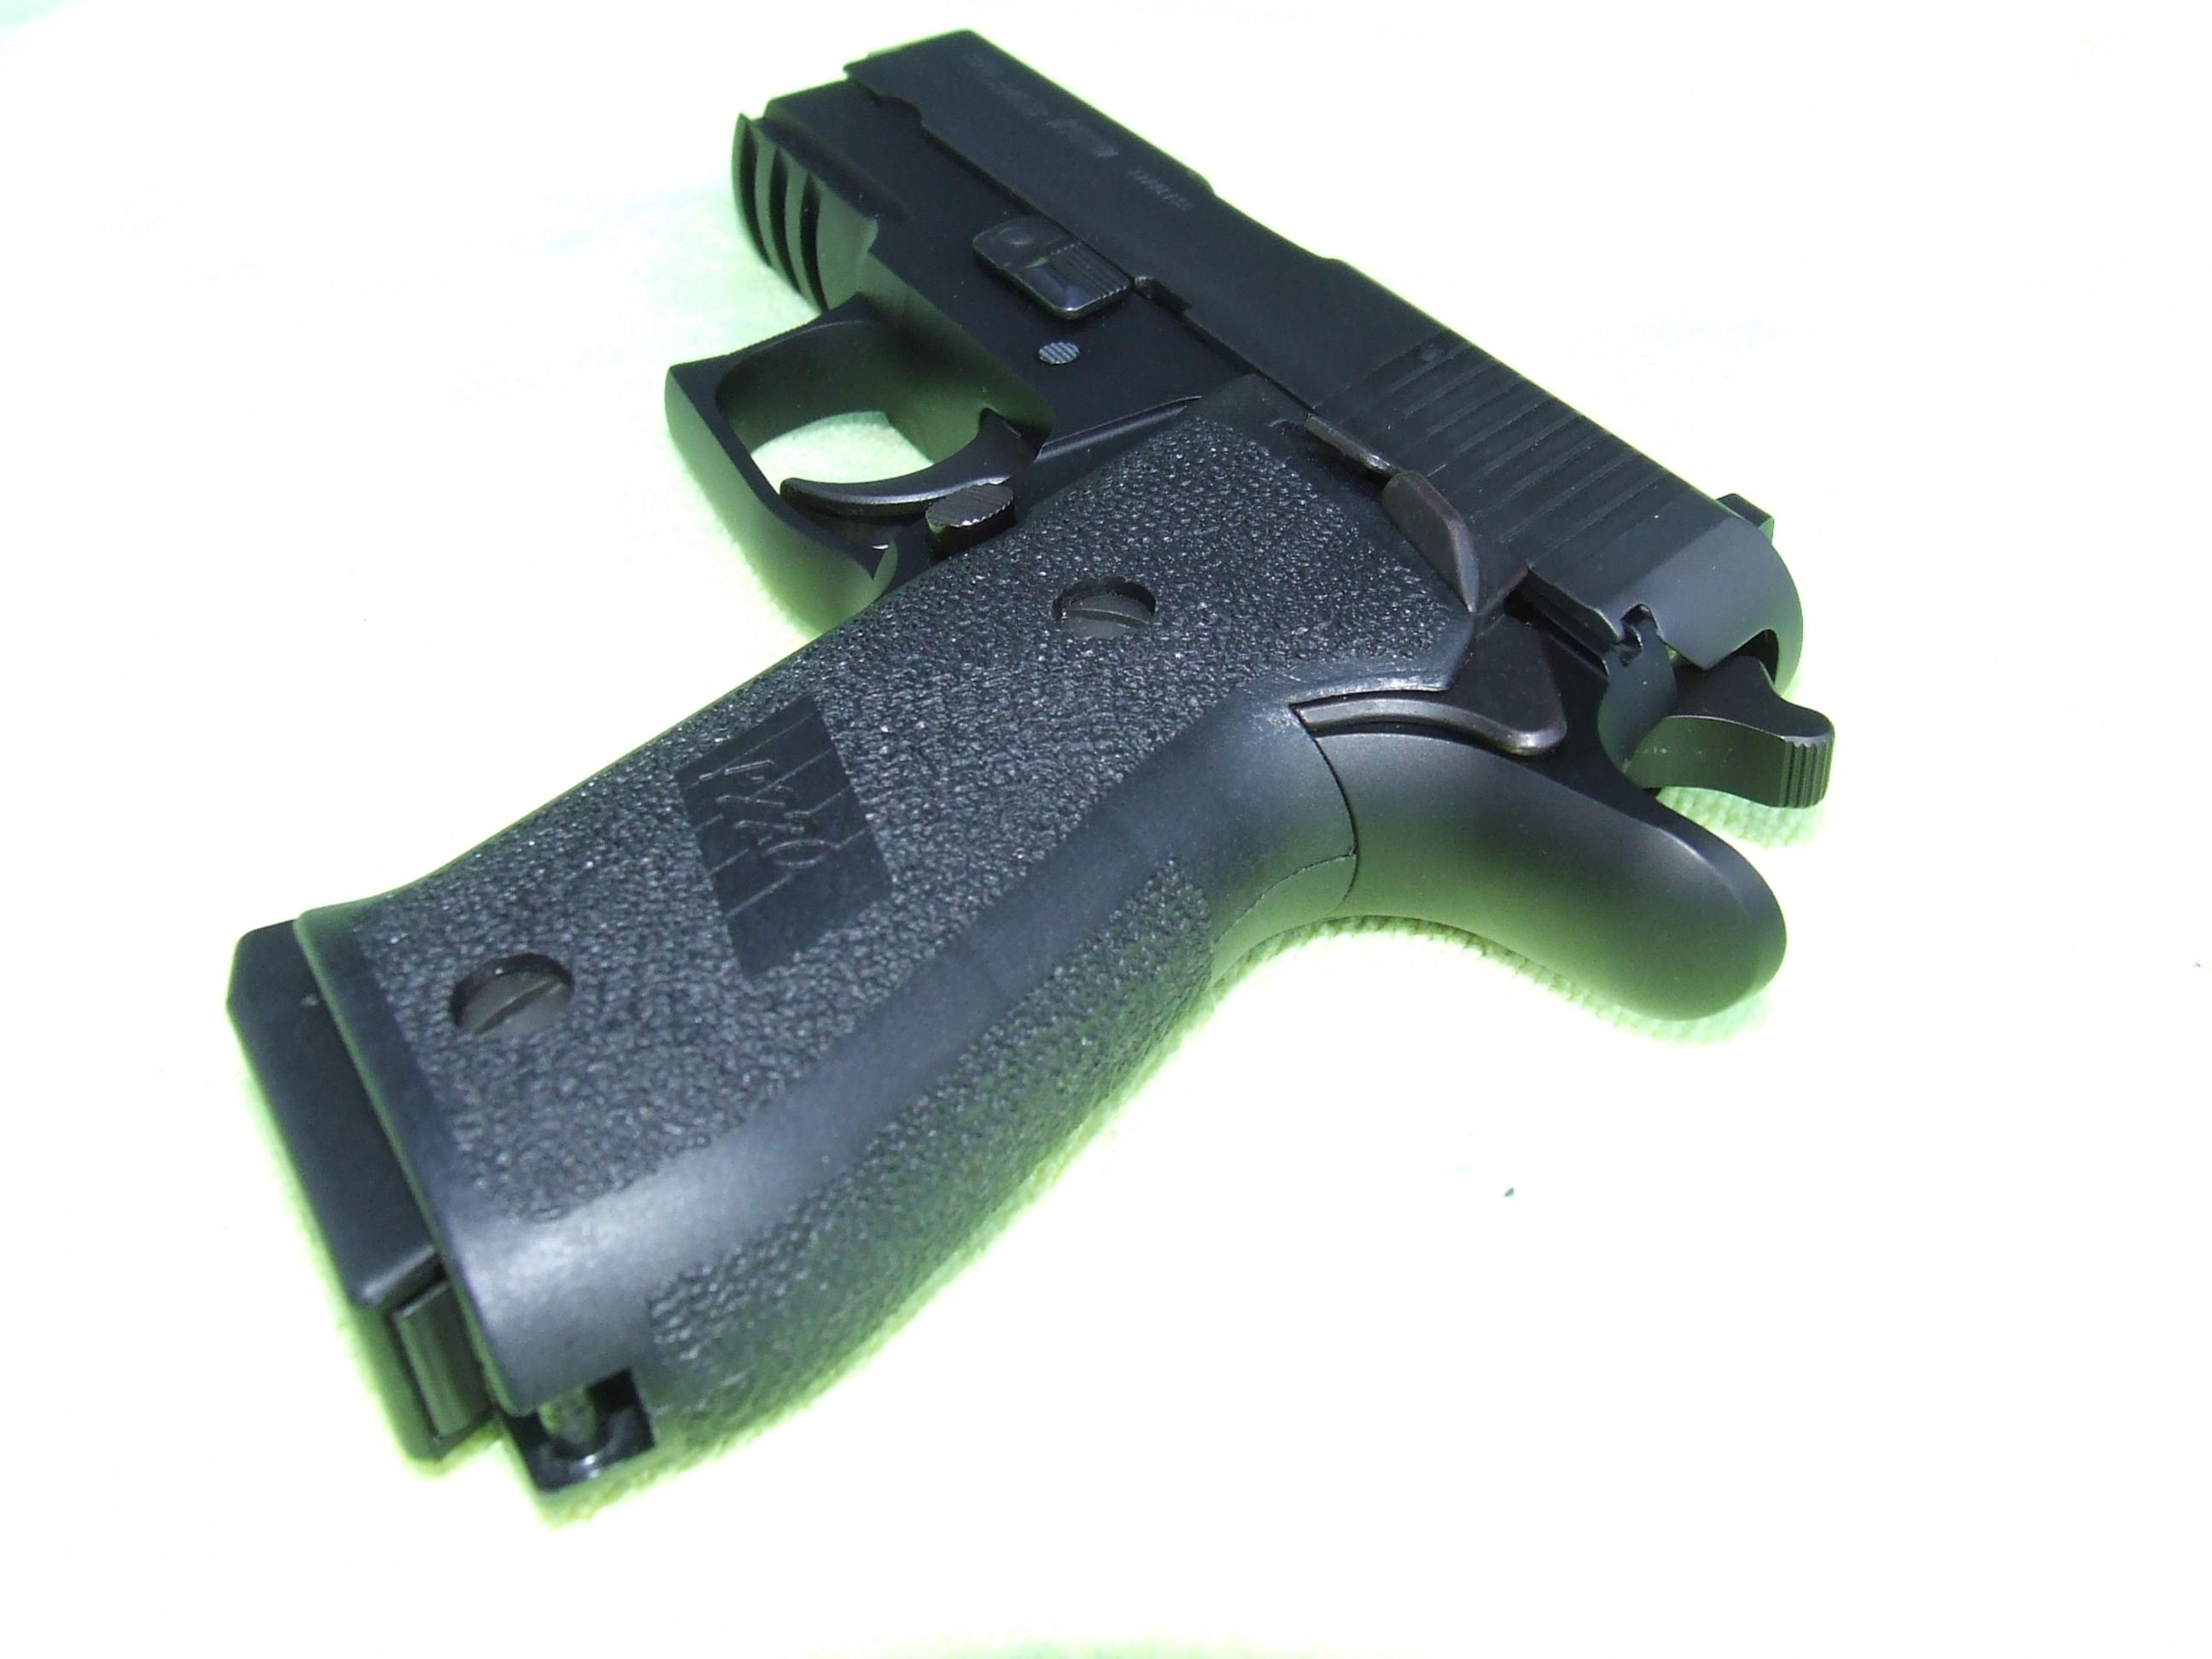 Need some info on the SIG P220 Carry SAS-dscf0401.jpg